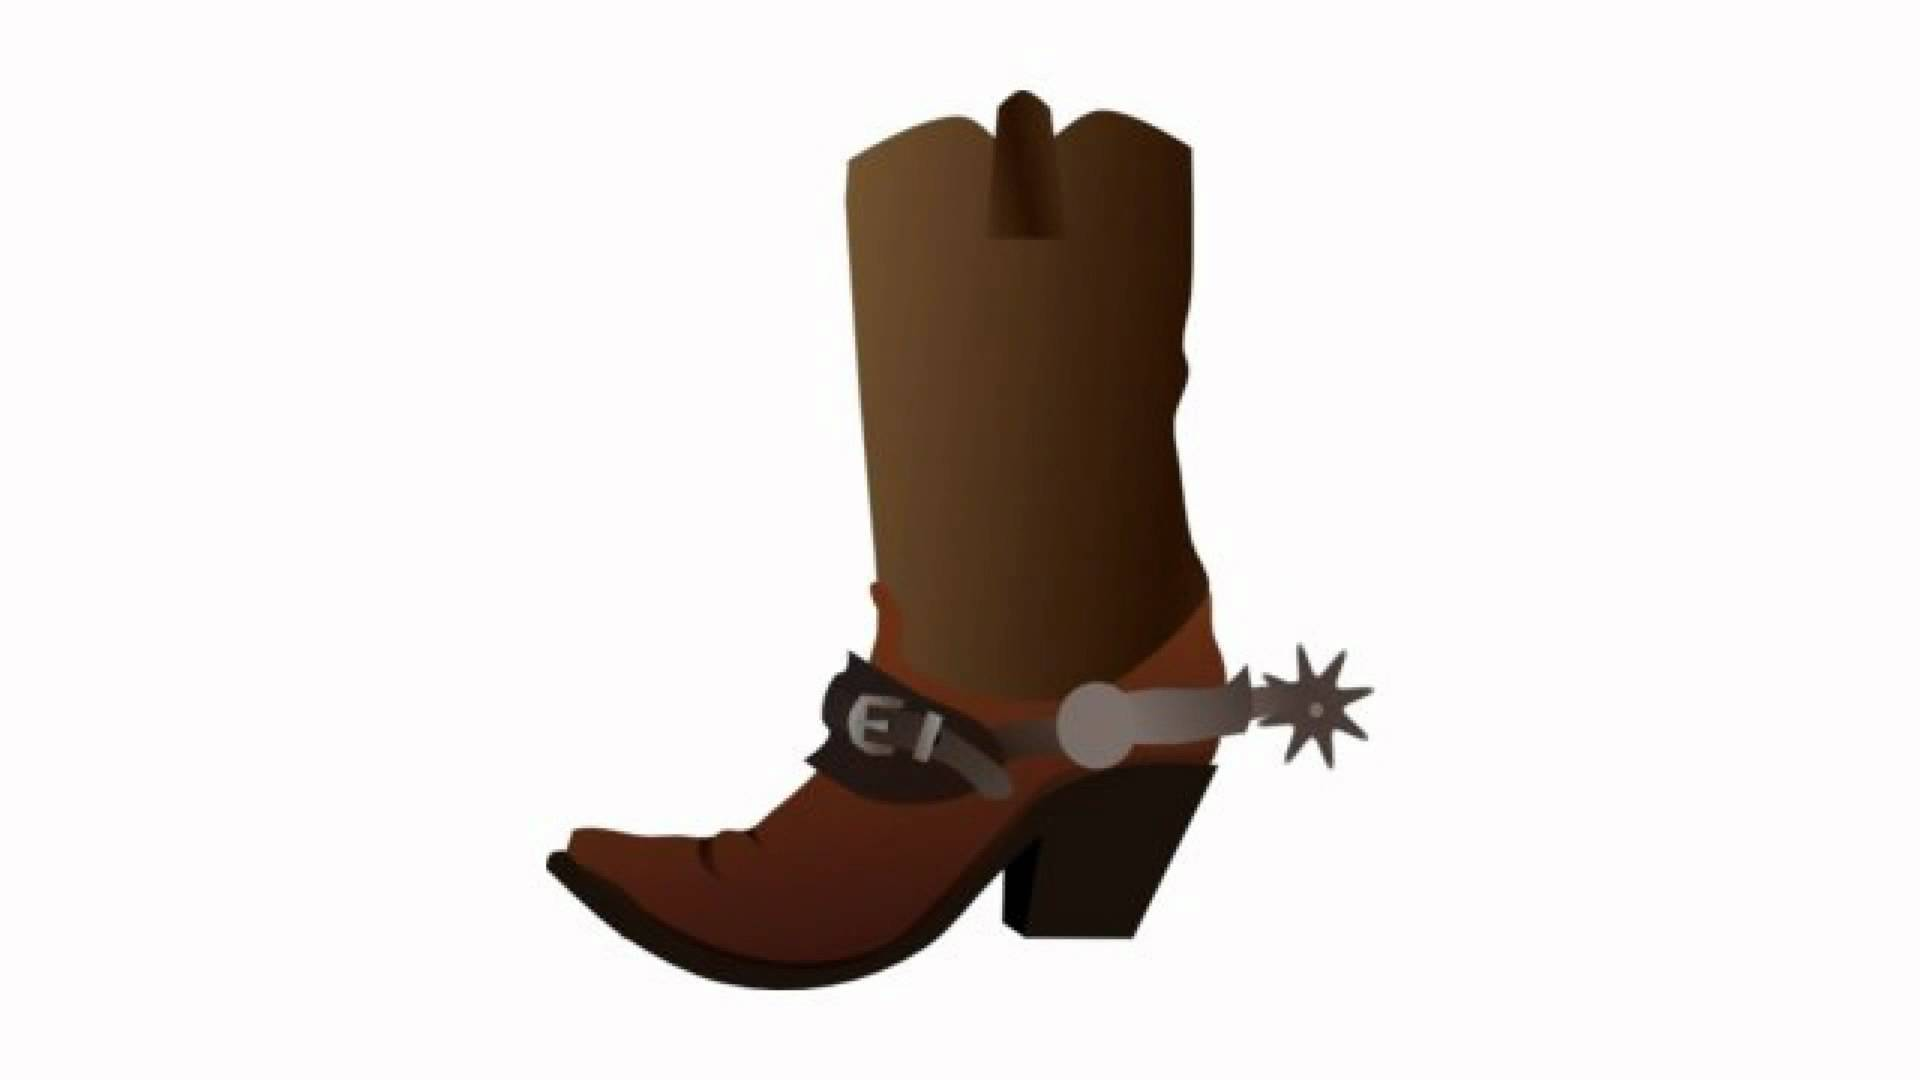 Free commercial use cowboy spurs clipart picture free stock Cartoon Cowboy Boots With Spurs N3 free image picture free stock